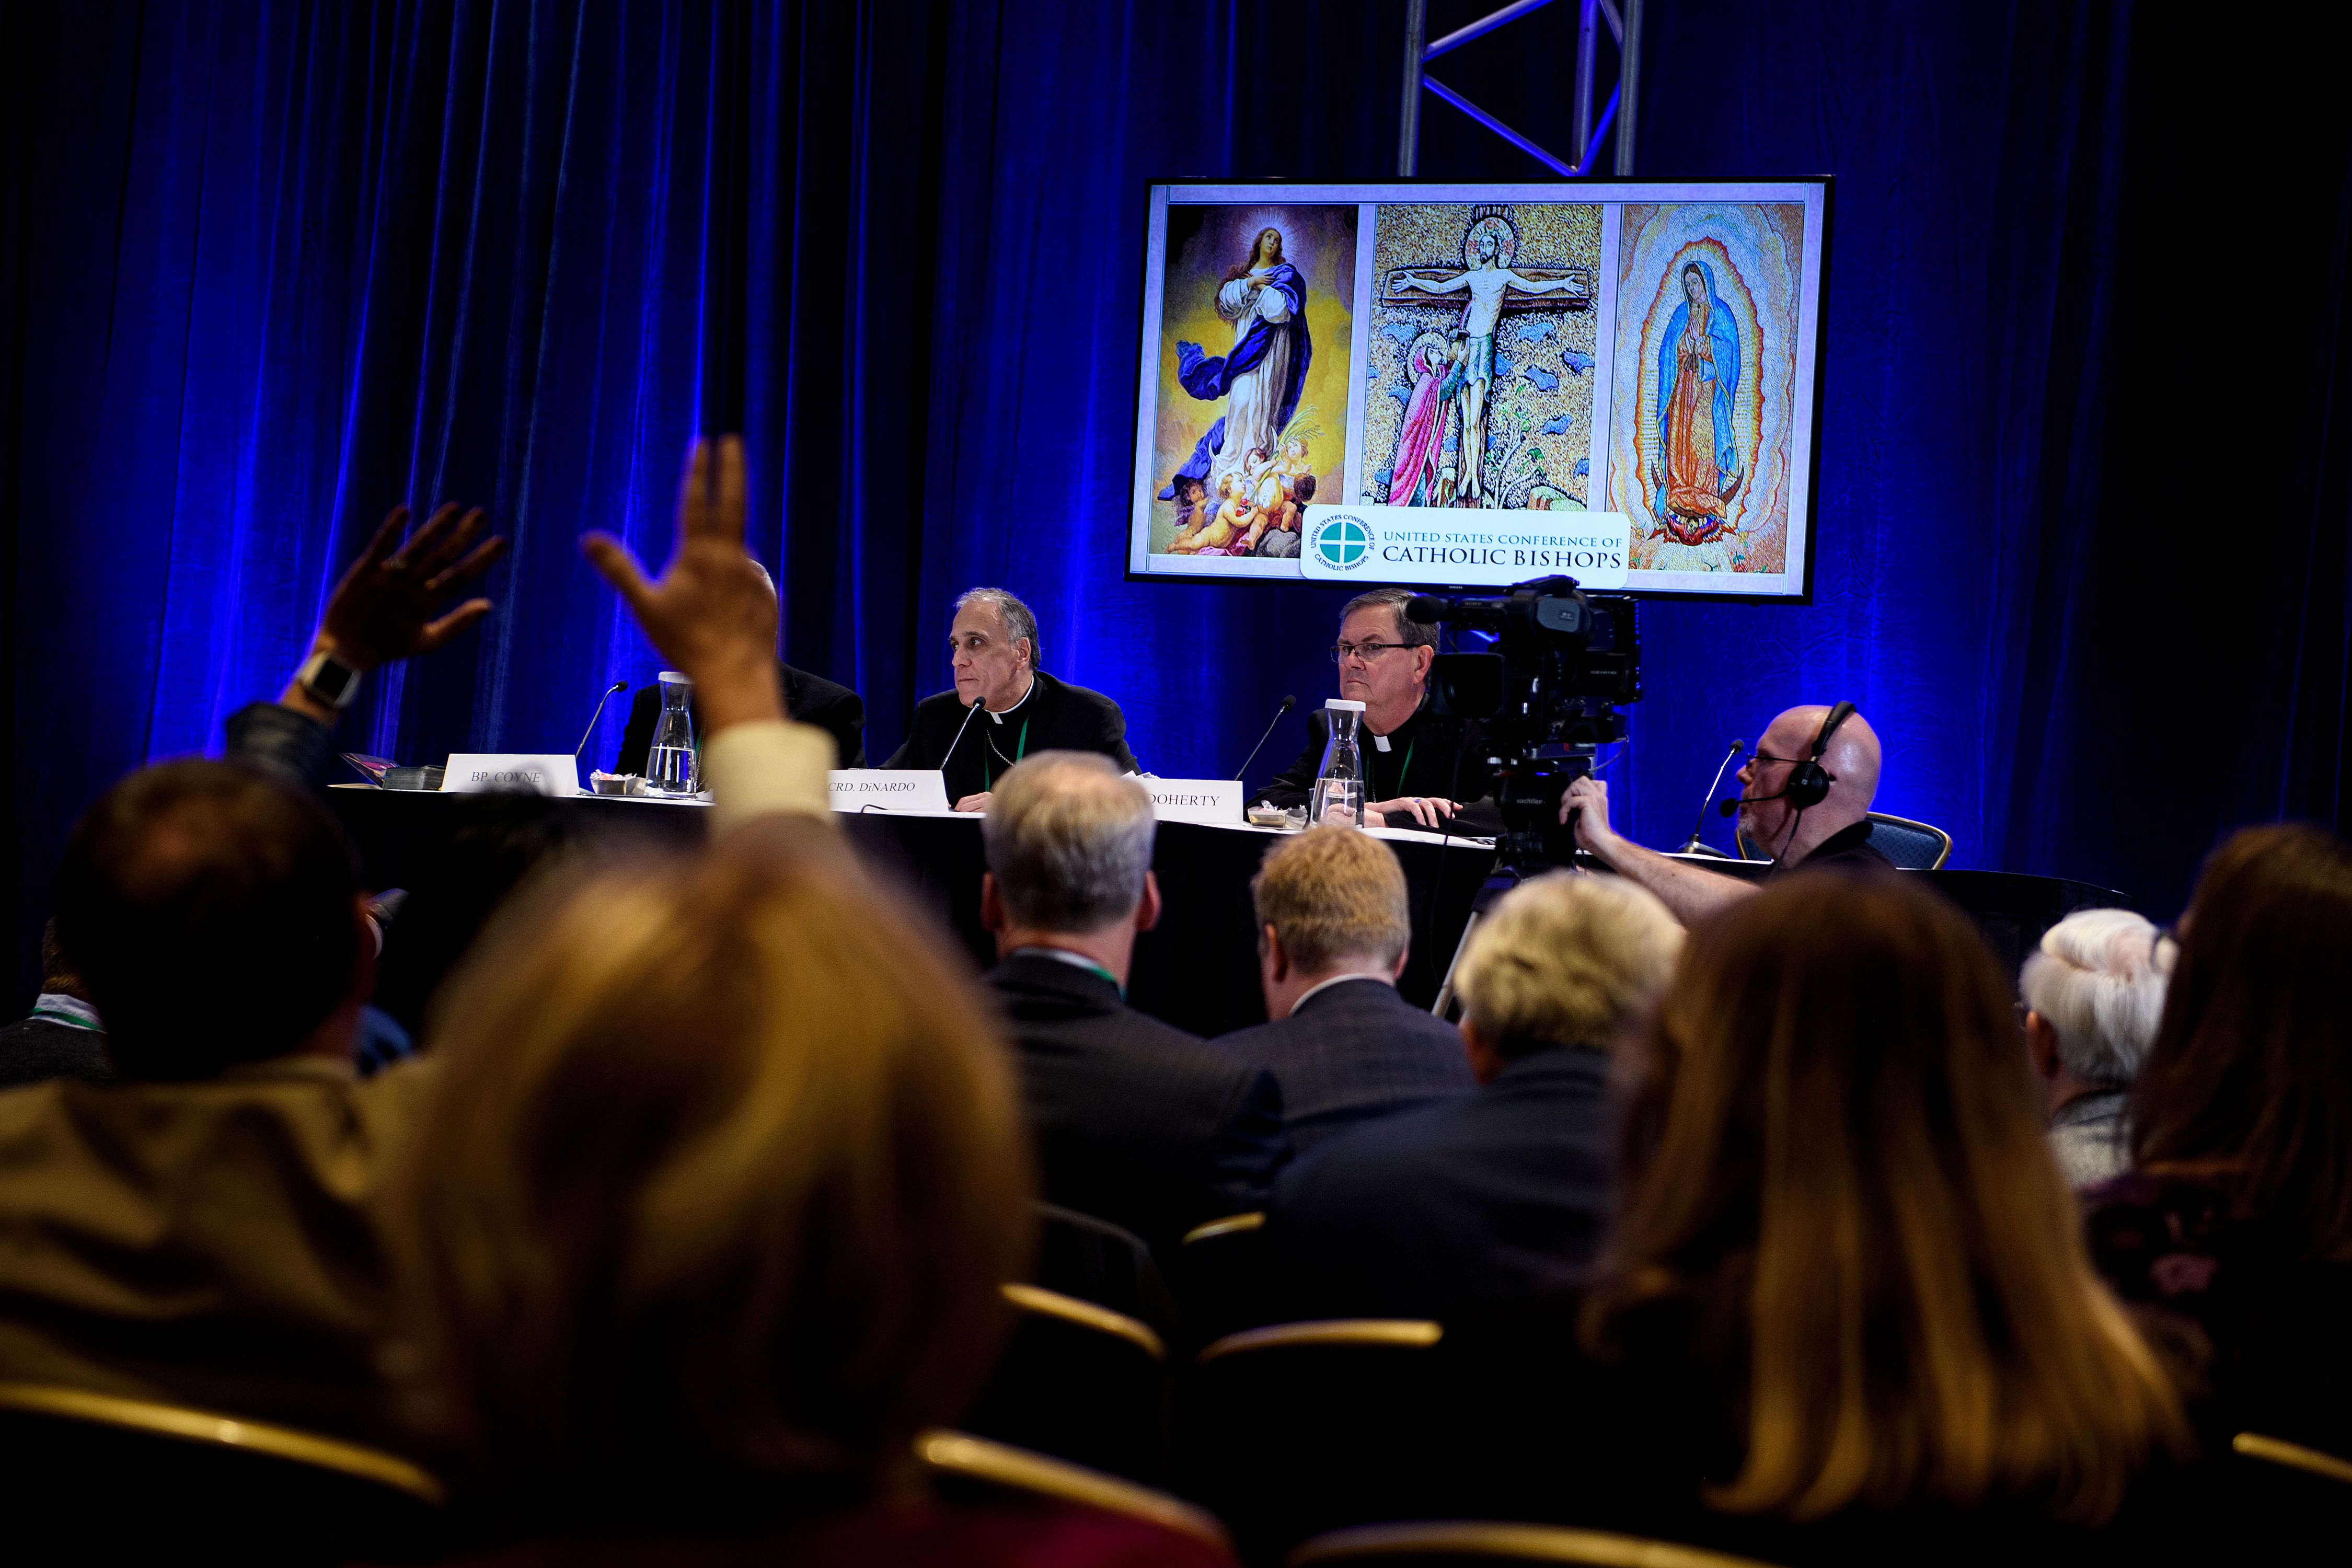 Galveston-Houston Cardinal Daniel DiNardo, President of the USCCB General Assembly, takes questions during a press conference at the annual US Conference of Catholic Bishops November 12, 2018 in Baltimore, Maryland. (BRENDAN SMIALOWSKI/AFP/Getty Images)